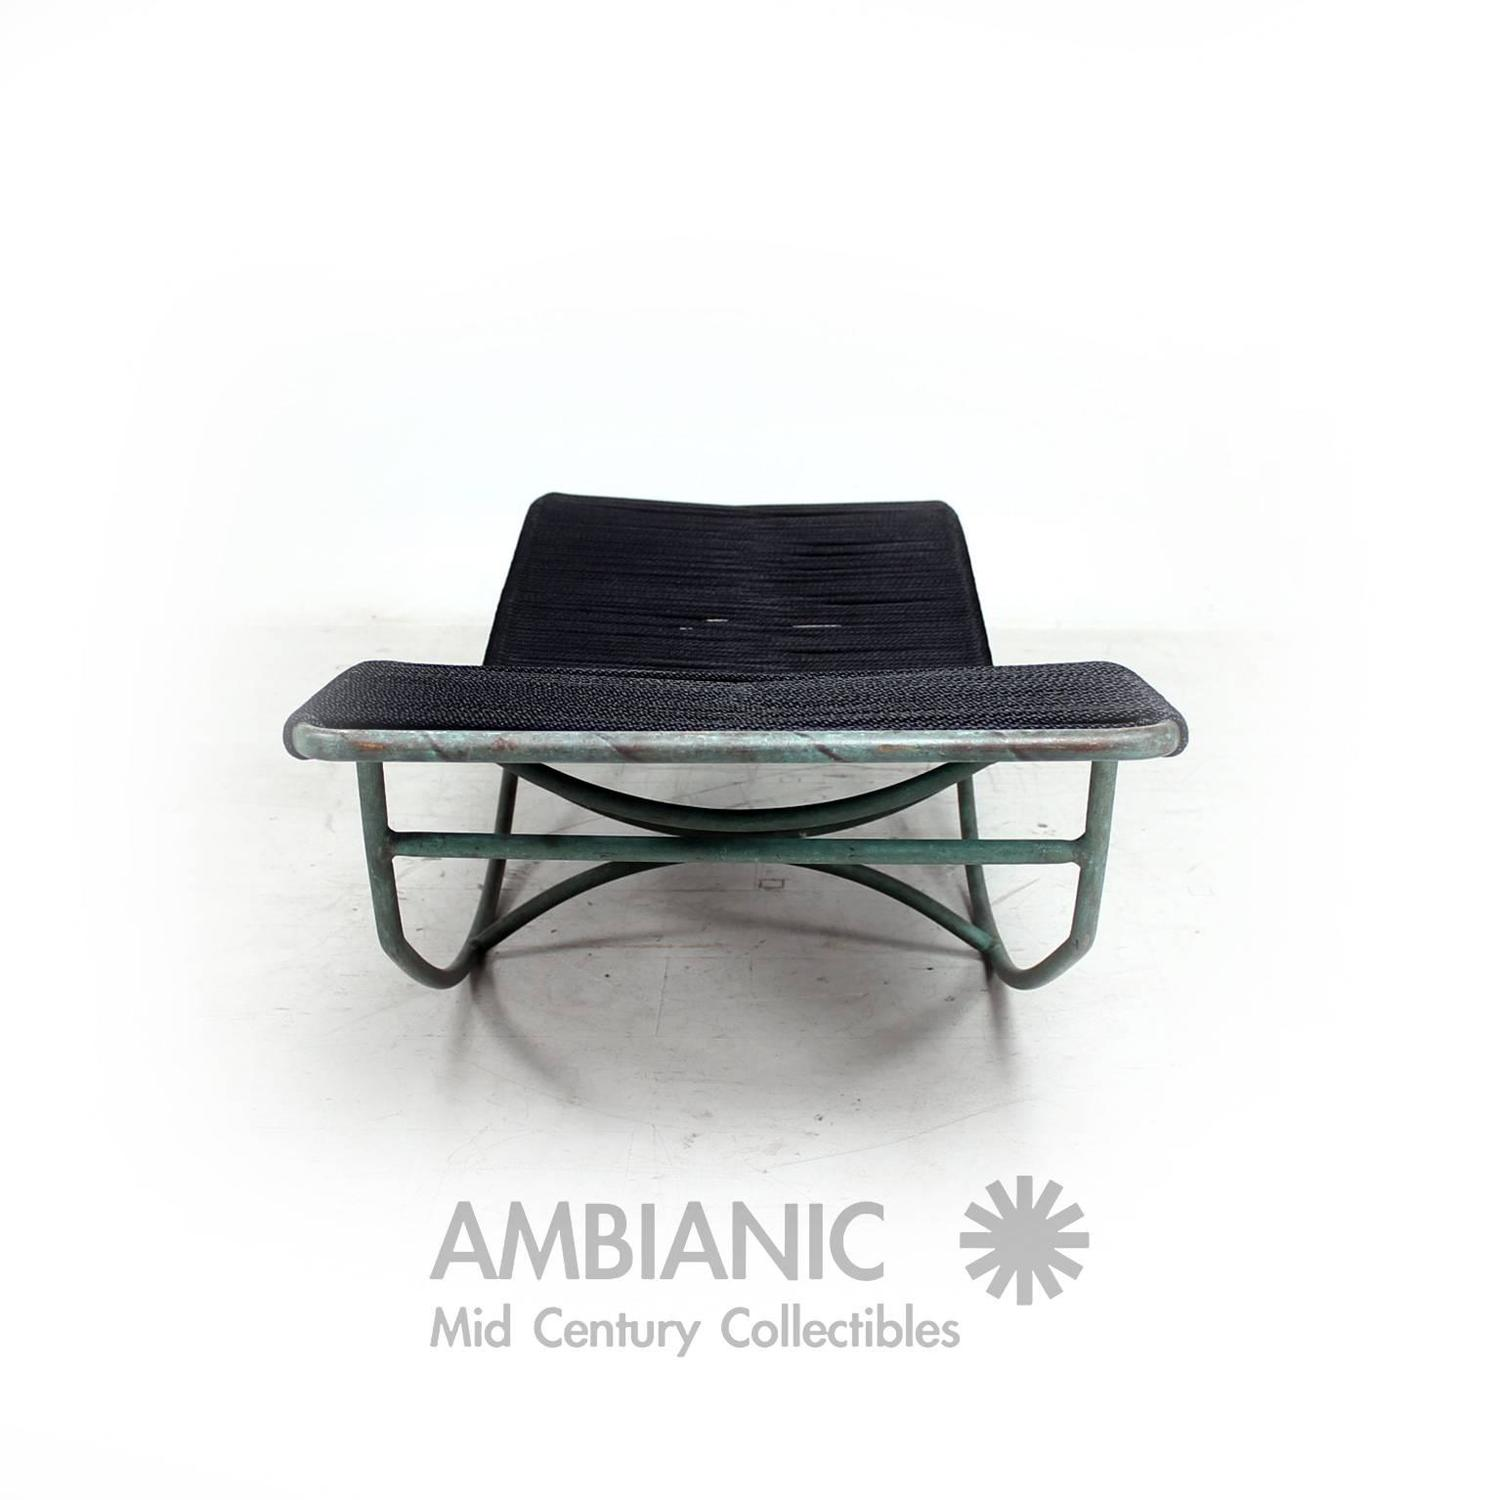 Walter lamb rocking chaise lounge for sale at 1stdibs for Chaise x rocker